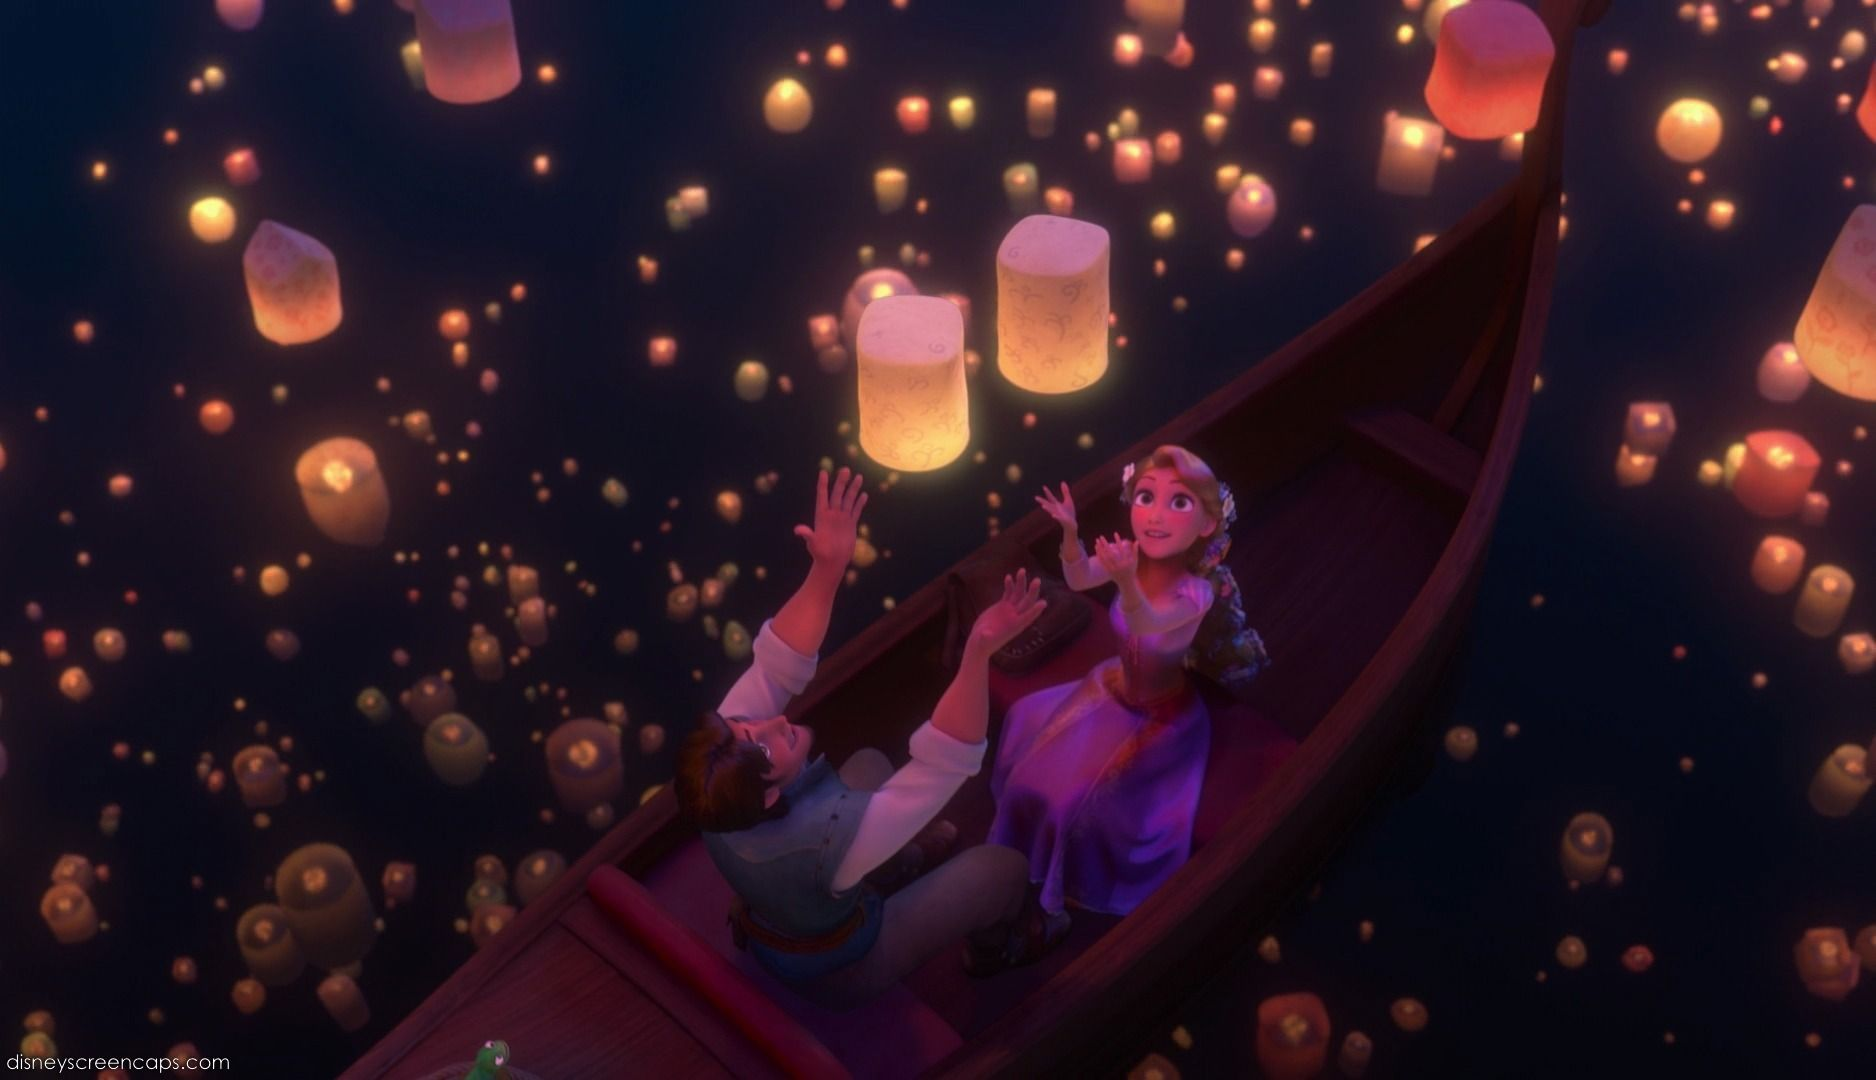 Tangled Lantern Wallpapers - Top Free